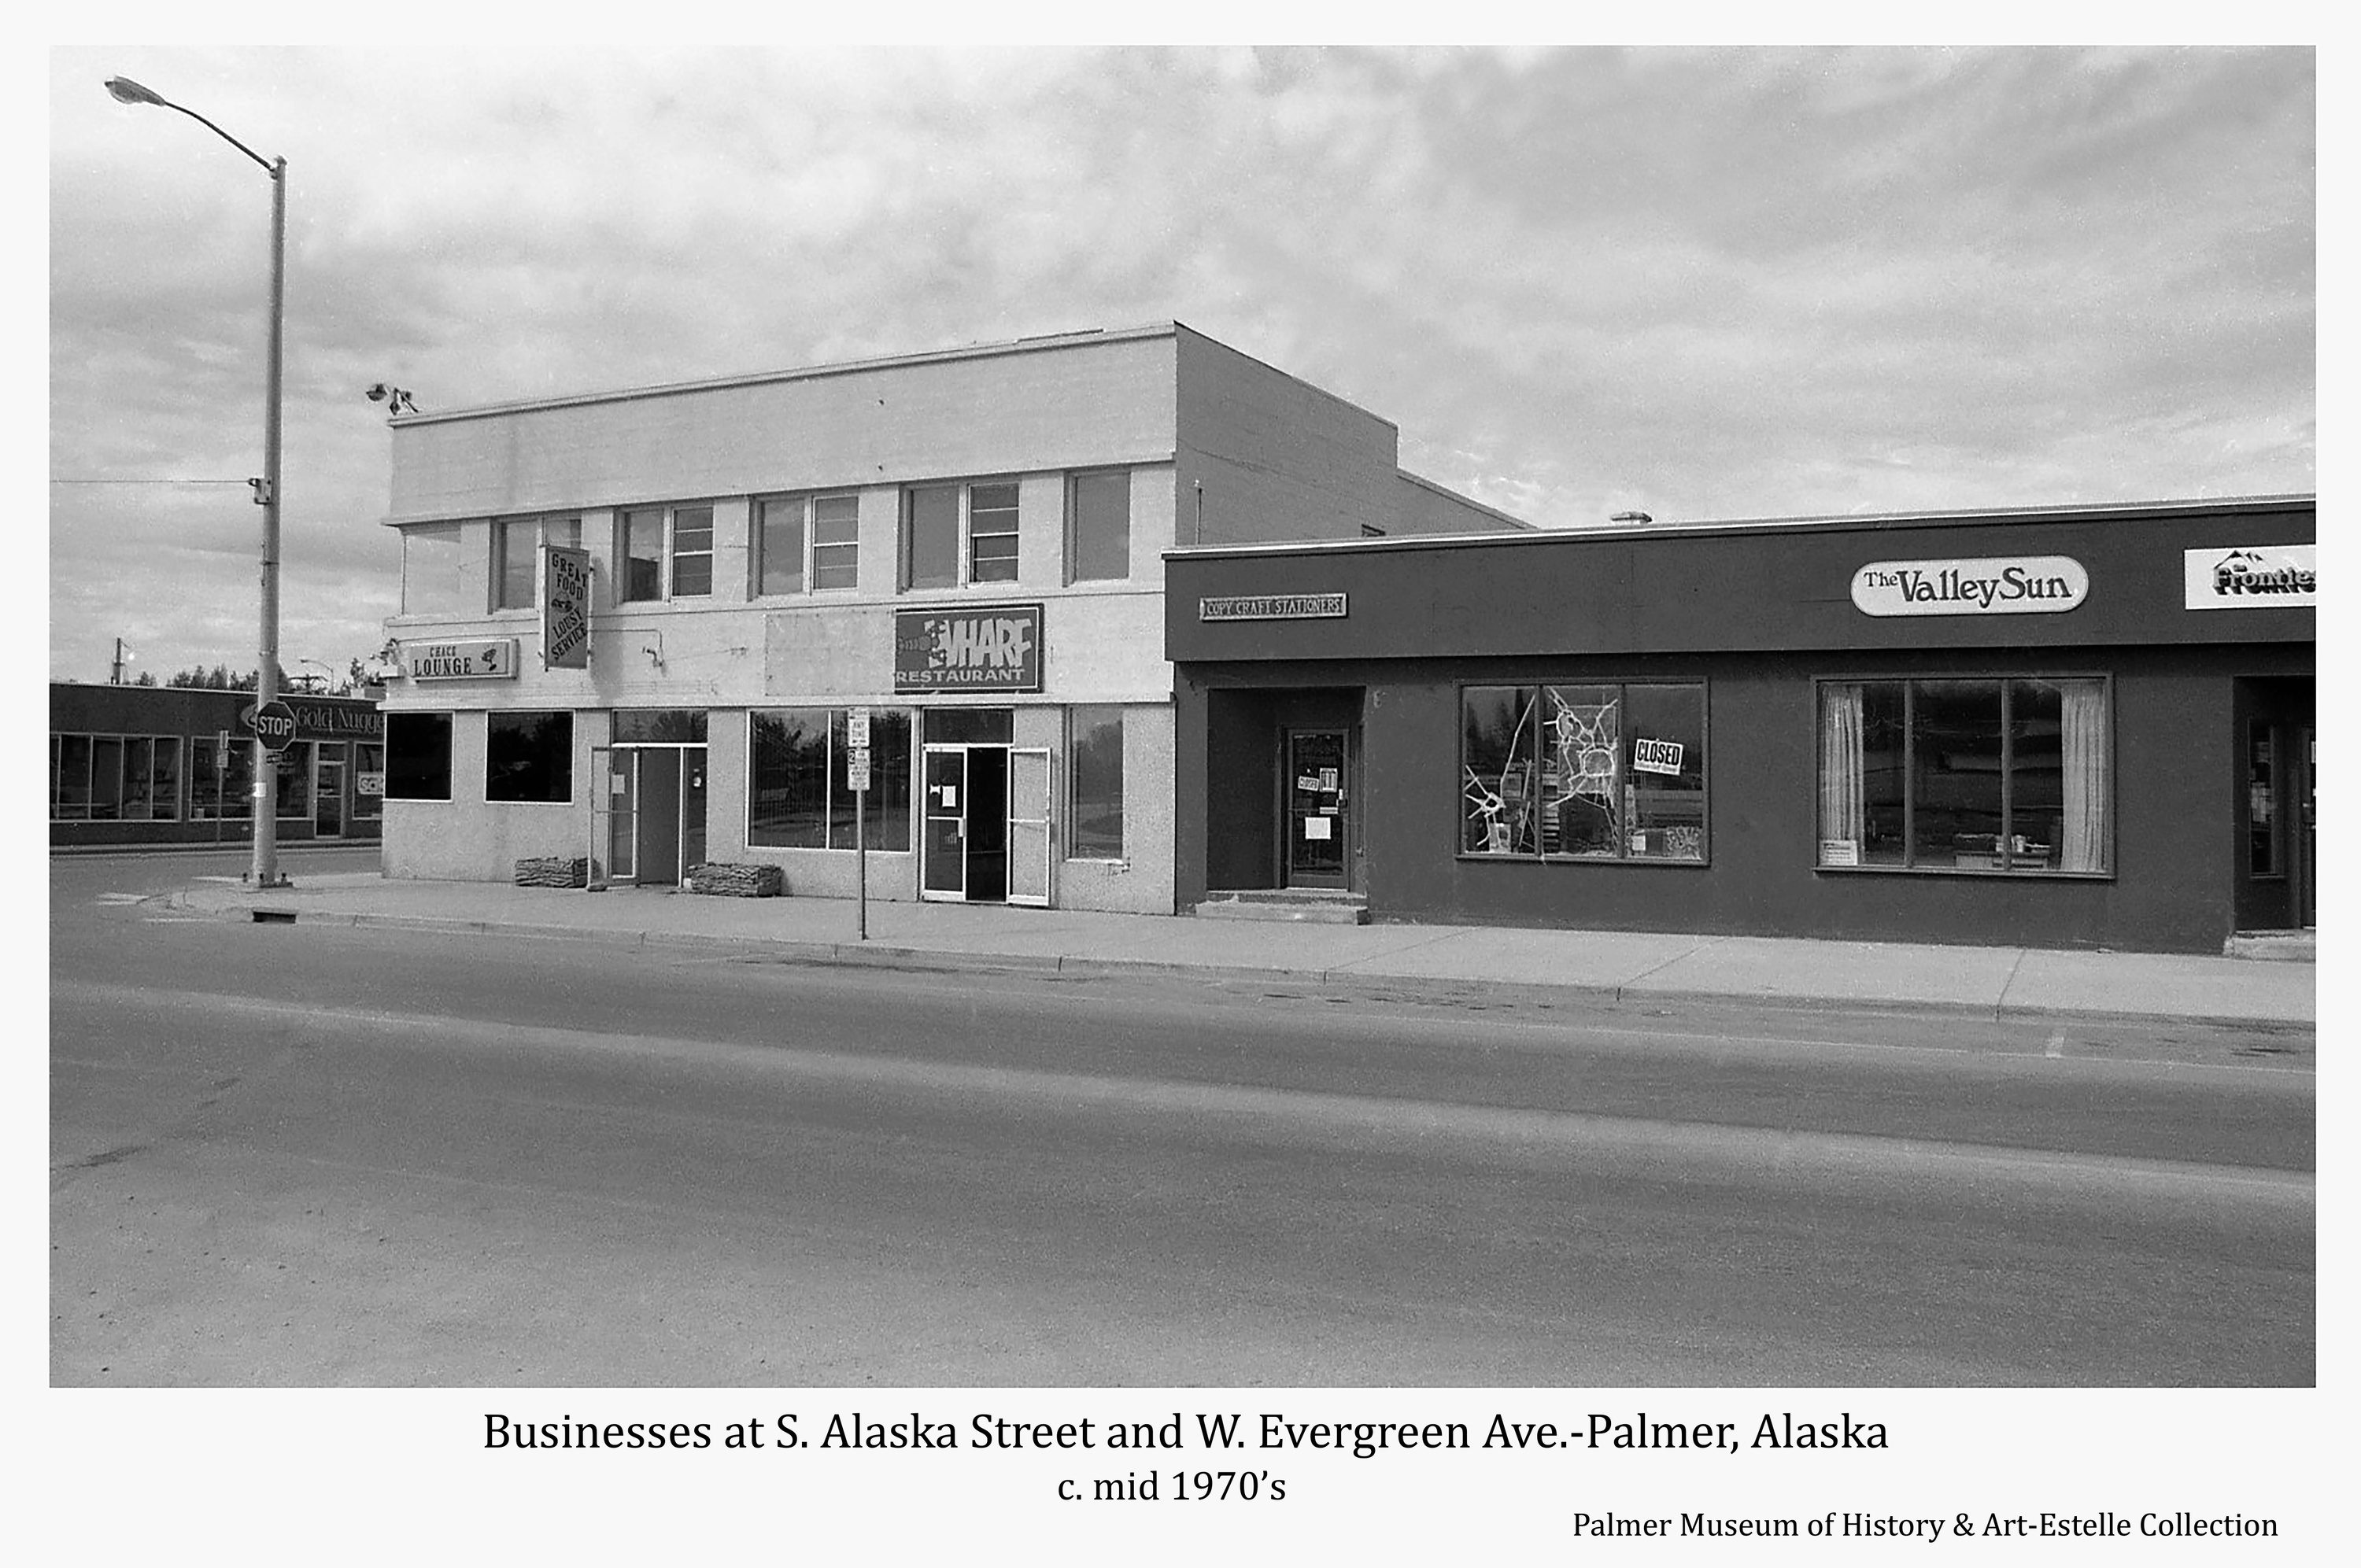 Image is a street view of businesses on the west side of South Alaska Way located between West Evergreen and West Dahlia Avenues and a partial view of a building on the south side of West Evergreen Ave.  A sign identifies a business shown as The Gold Nugget… south of West Evergreen.  Fronting on South Alaska Street are the Chase Lounge, The Warf Restaurant, City Craft Station, The Valley Sun, and Valley Frontiersman.